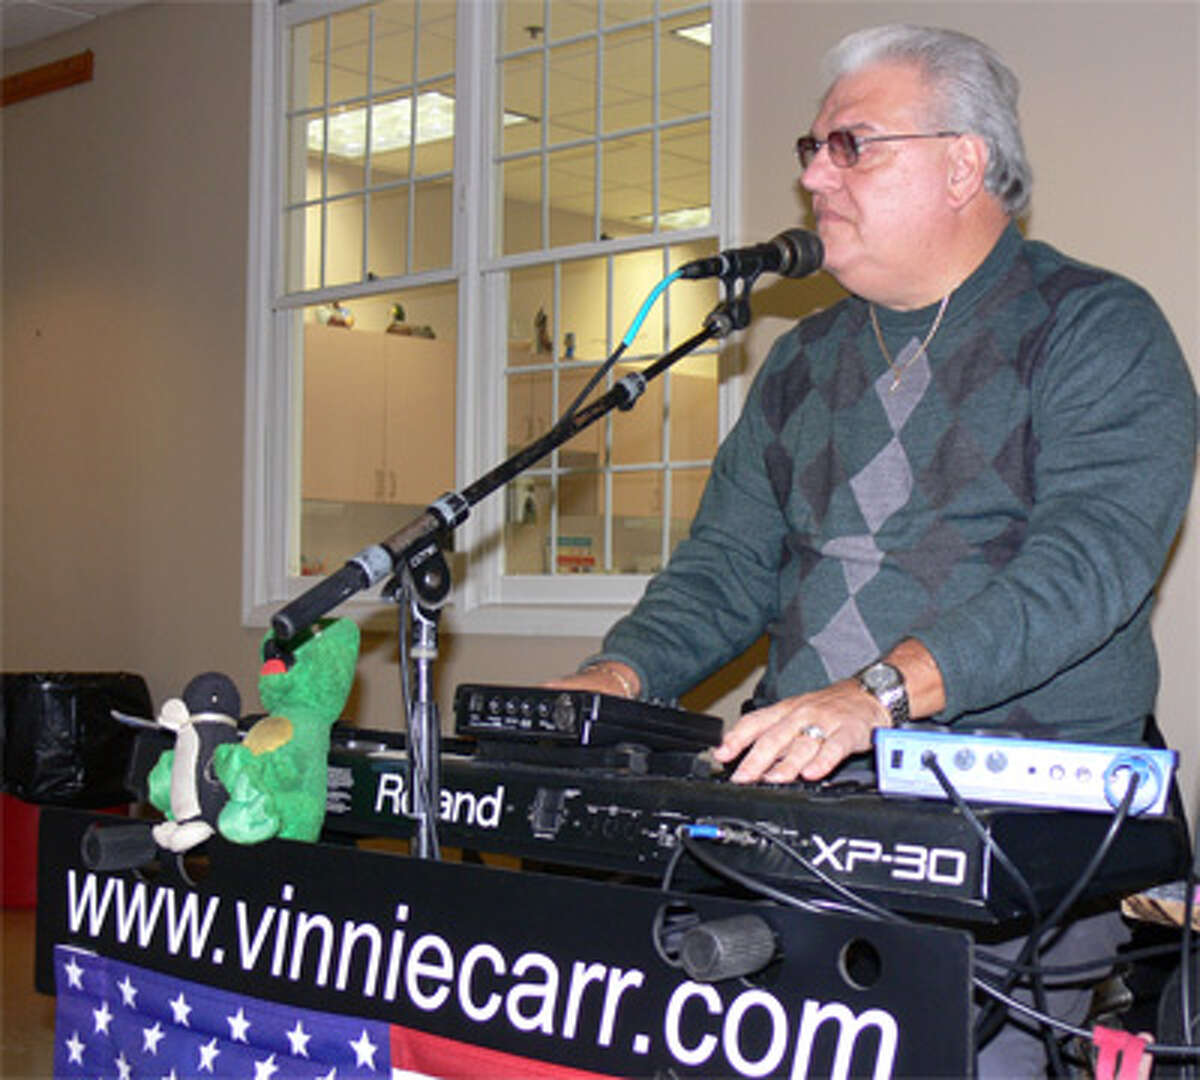 Vinnie Carr provides the lives music, with plenty of oldies, at the party.